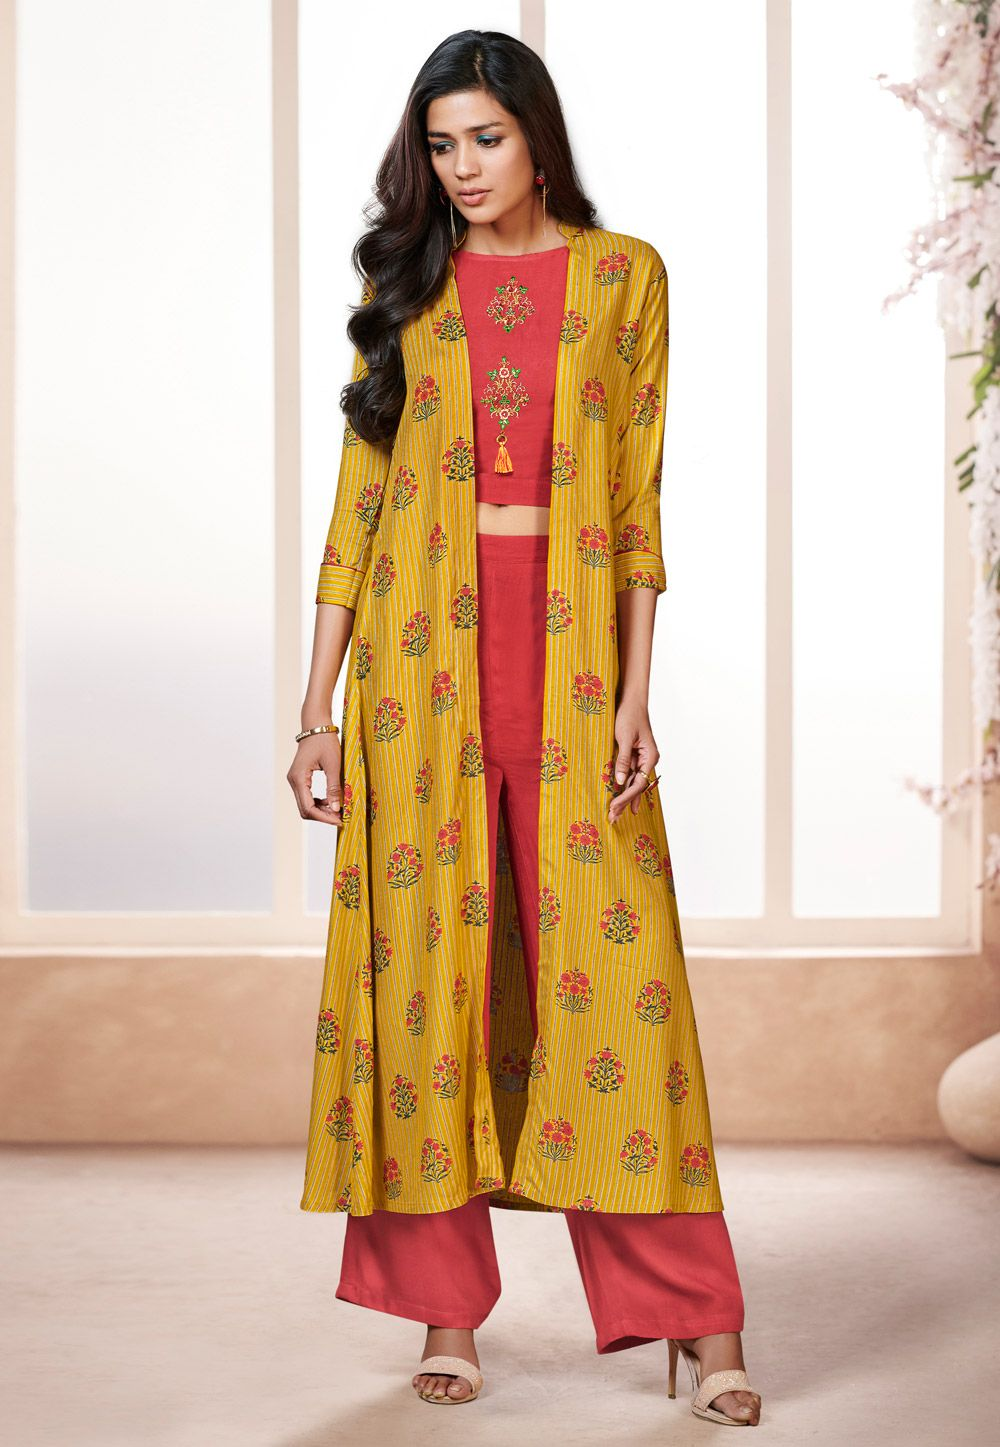 582e45ae89 Buy Red Rayon Readymade Palazzo Suit With Jacket 157568 online at lowest  price from huge collection of salwar kameez at Indianclothstore.com.